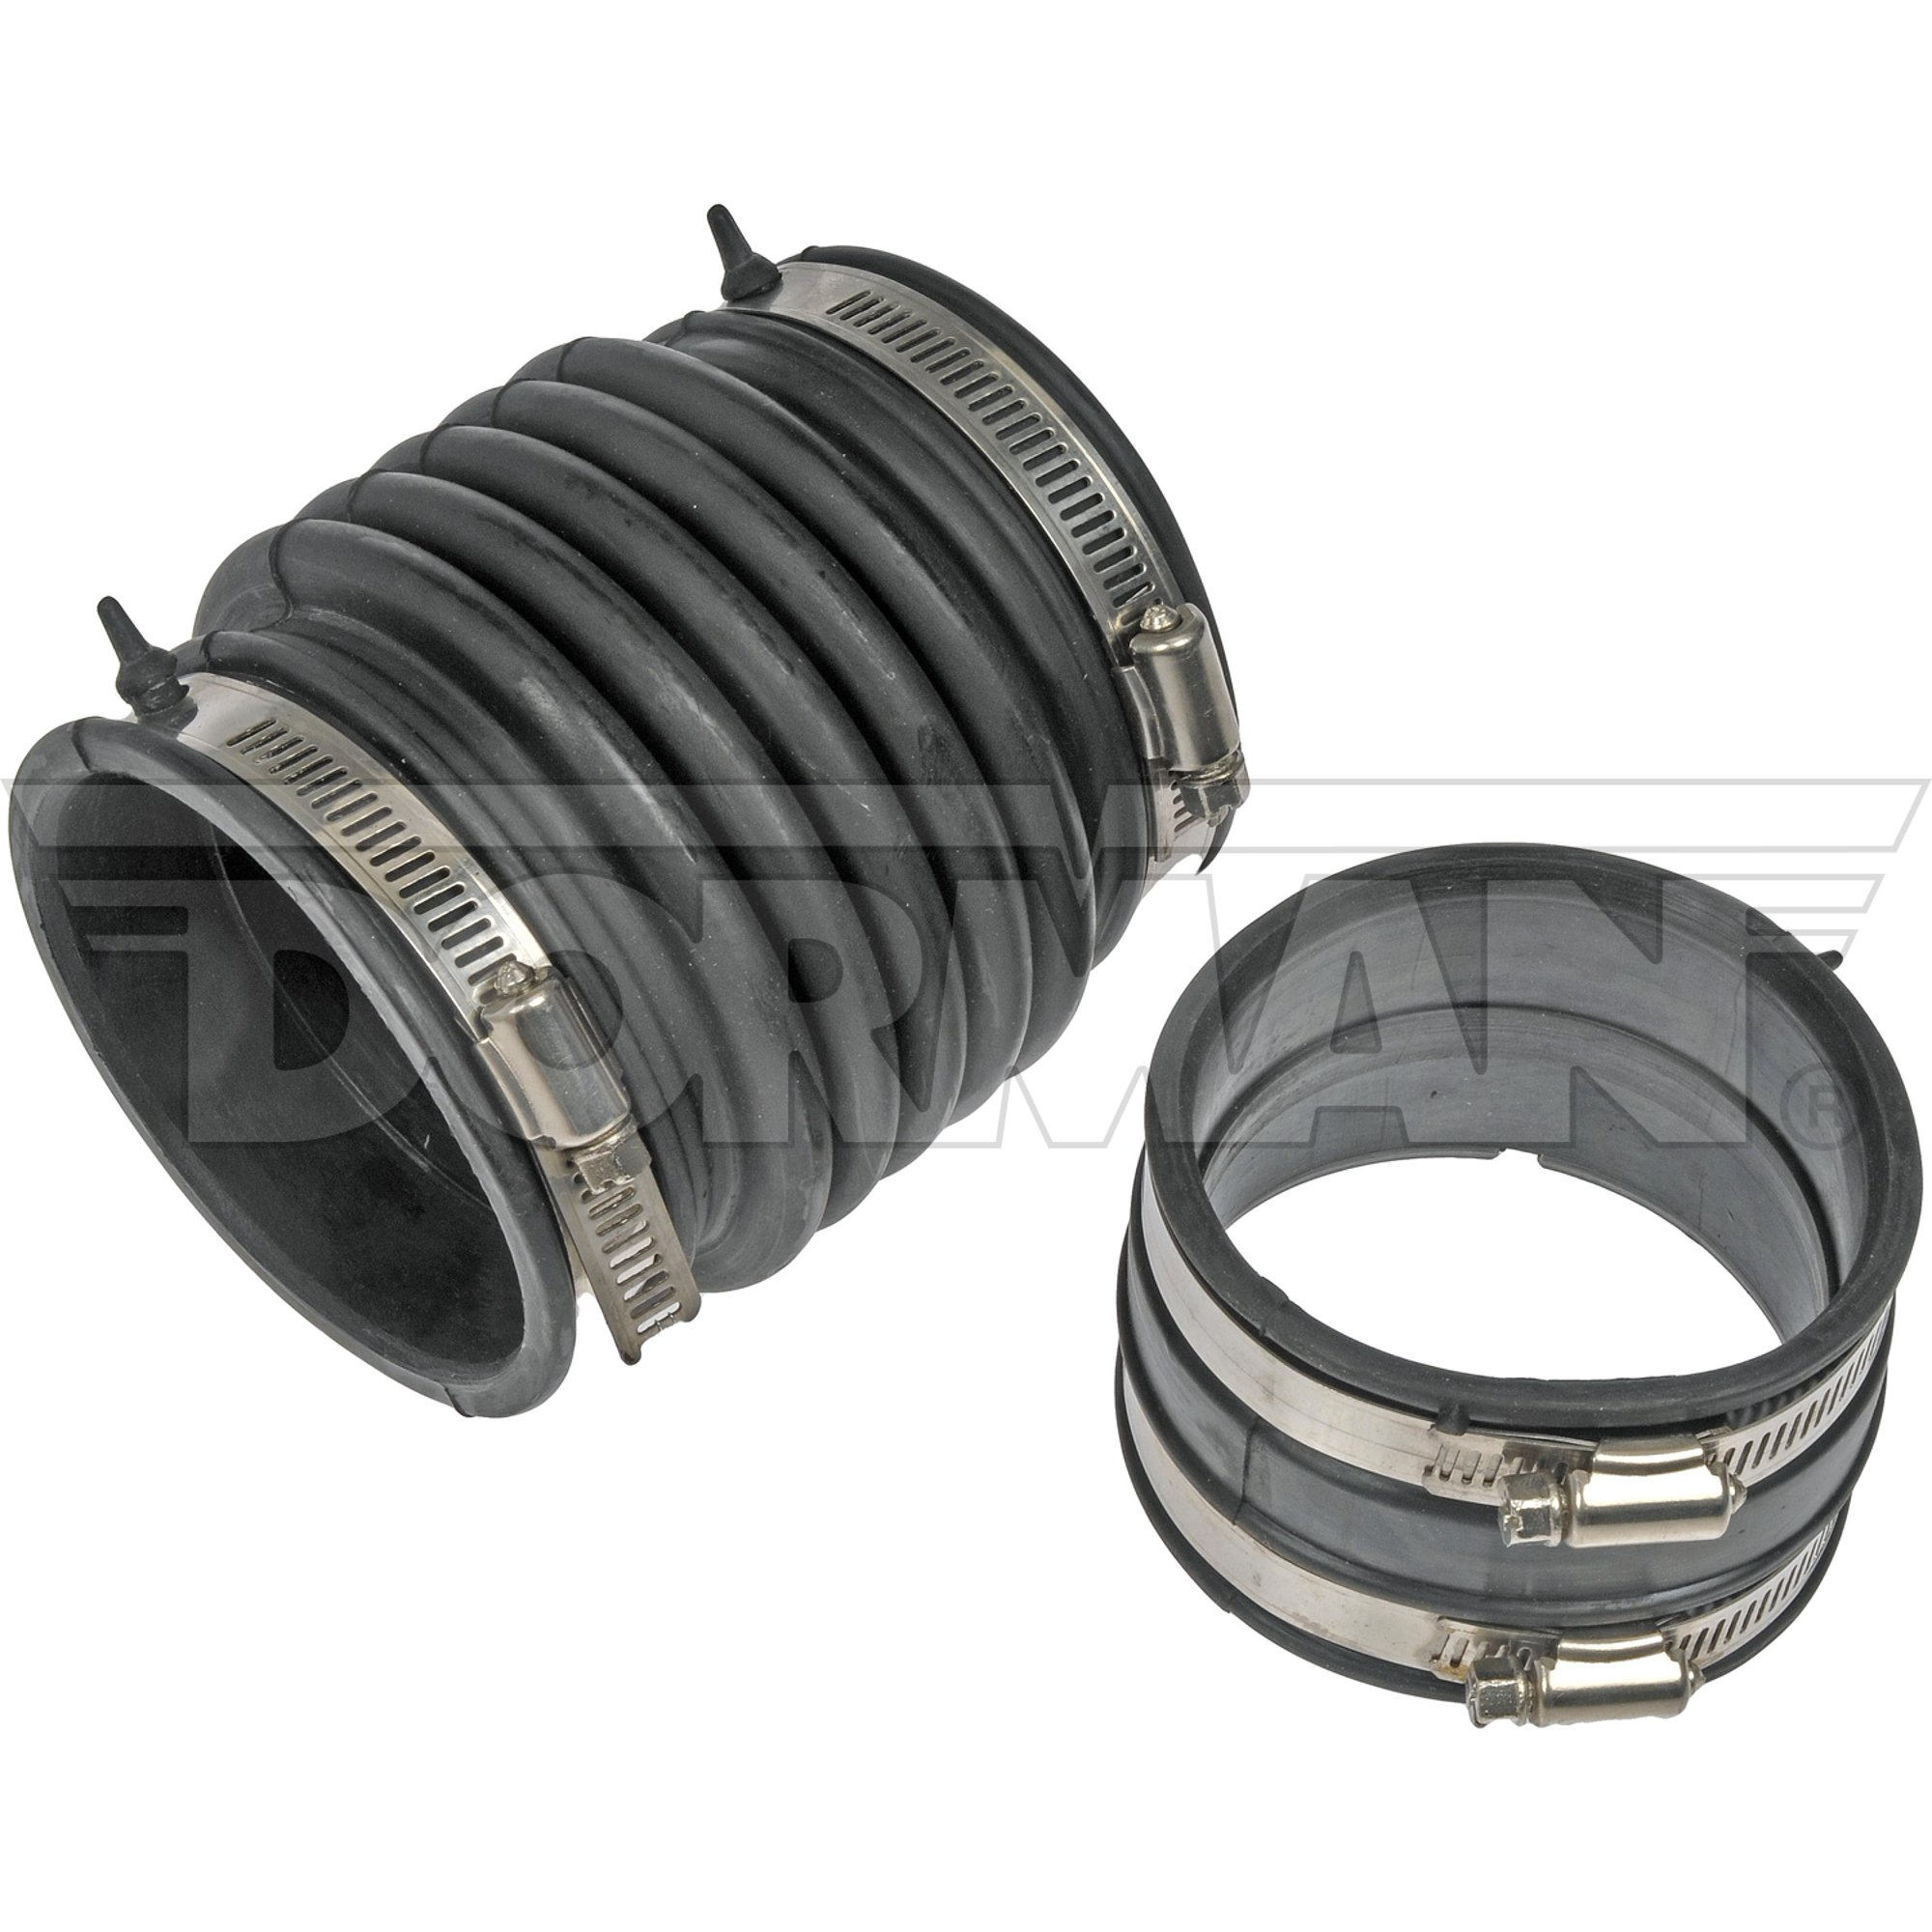 Air Intake Hose >> Dorman Oe Solutions 696 009 Air Intake Hose Oe Solutions Tm Oe Replacement 3 5 Inch Inlet Outlet Diameter 4 75 Inch Length Black Rubber